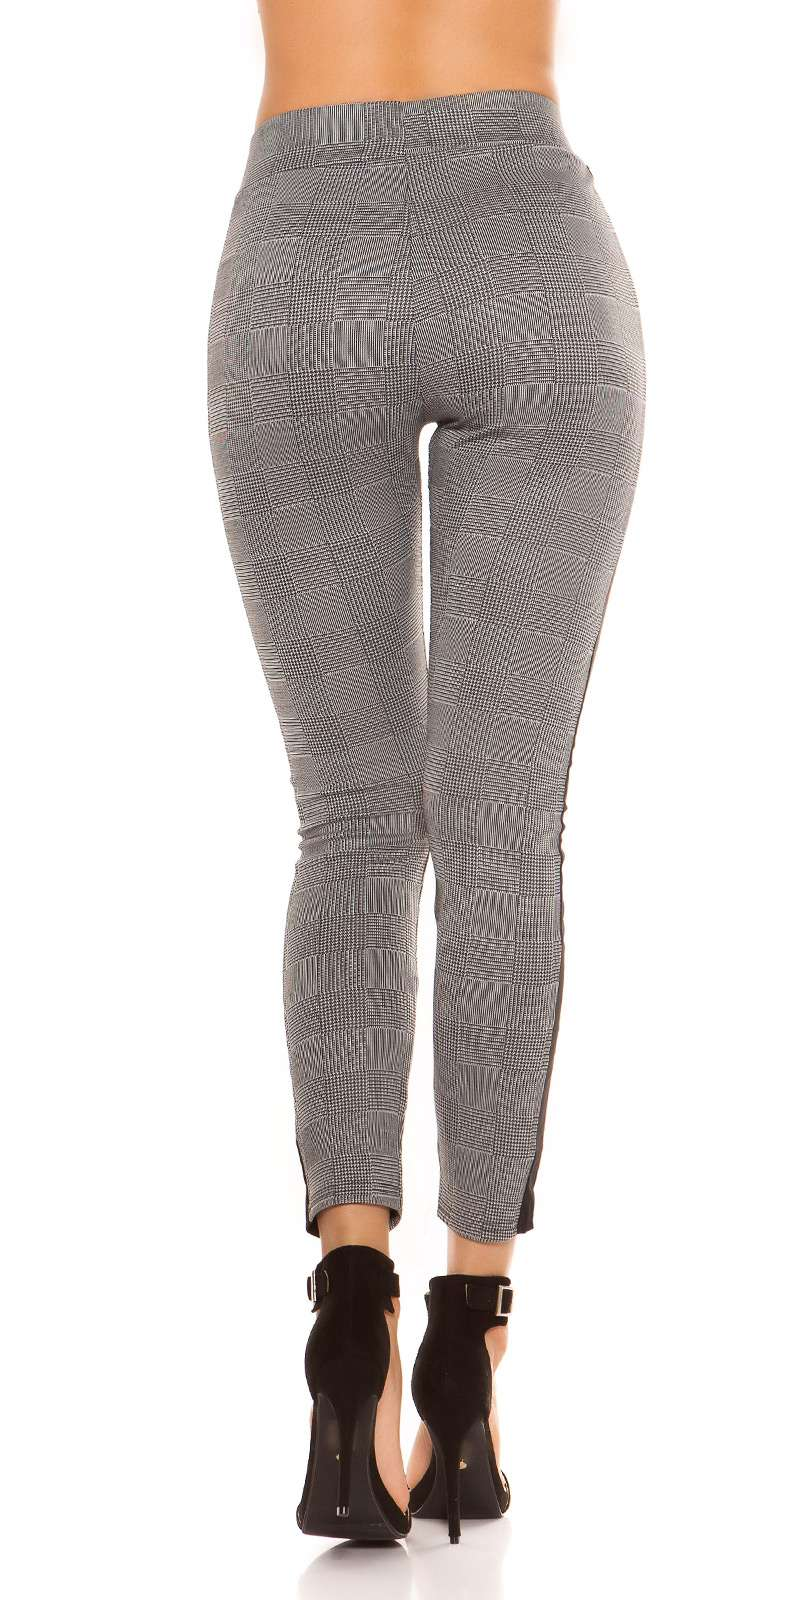 Karo Leggings